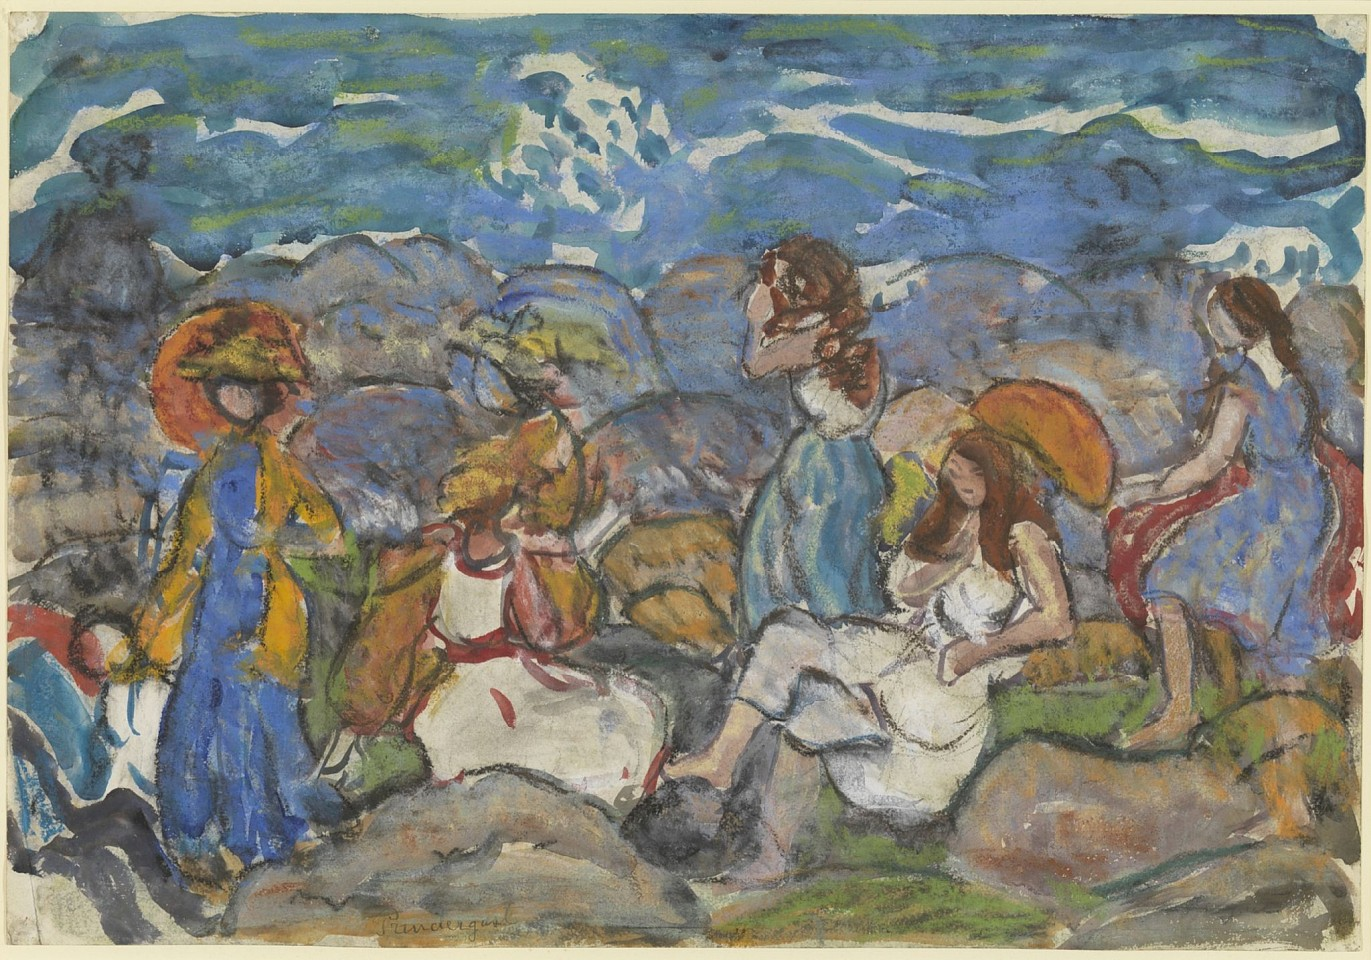 Maurice Prendergast ,   On The Rocks, North Shore, Massachusetts  ,  c. 1916-19     watercolor, pastel and pencil on paper ,  13 3/4 x 19 3/4 in. (34.9 x 50.2 cm)     AG4077